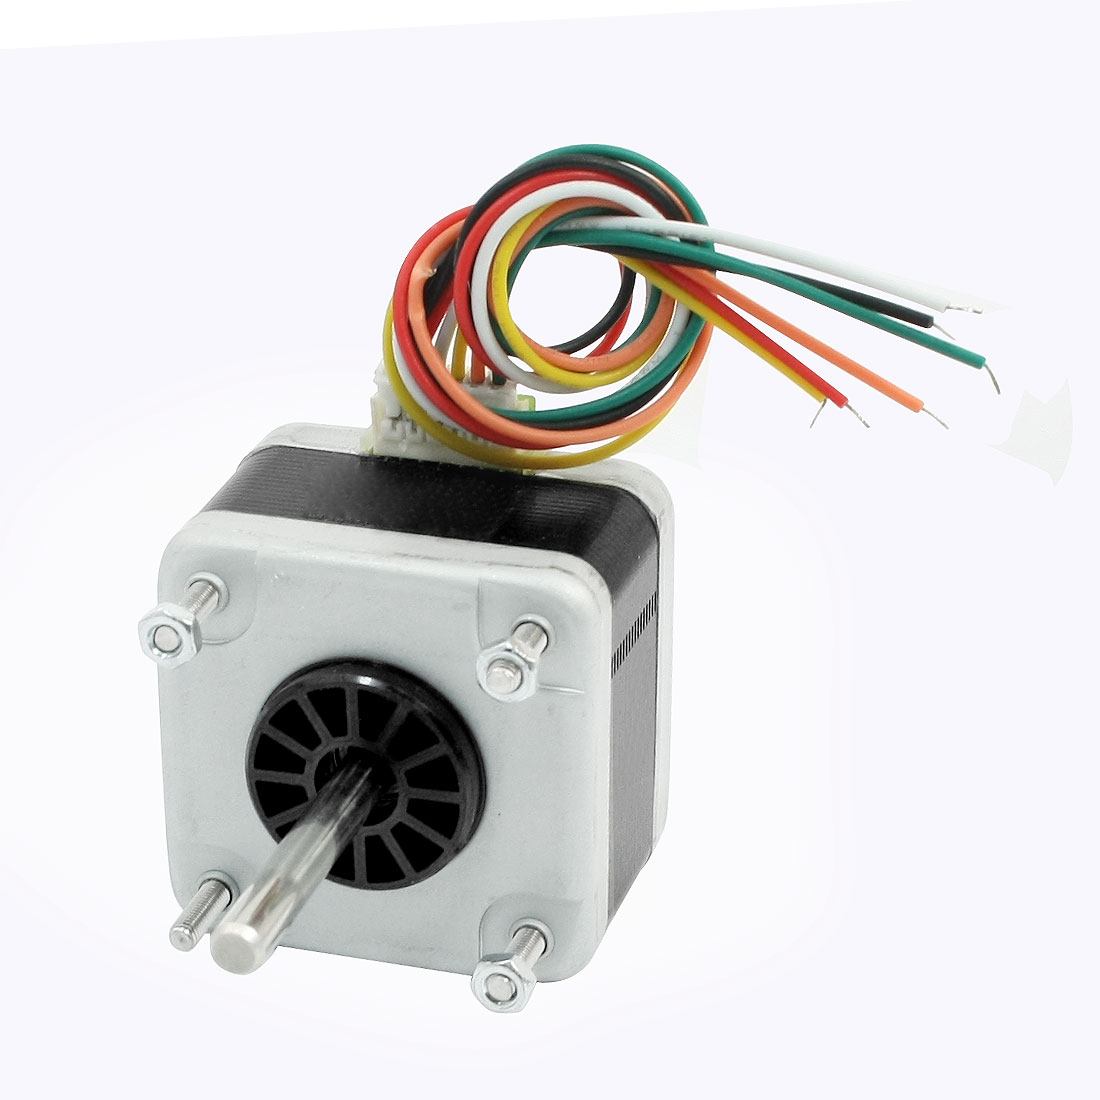 1000RPM 0.5A Two Phase 6 Wire 5mm Drive Shaft Stepper Stepping Motor